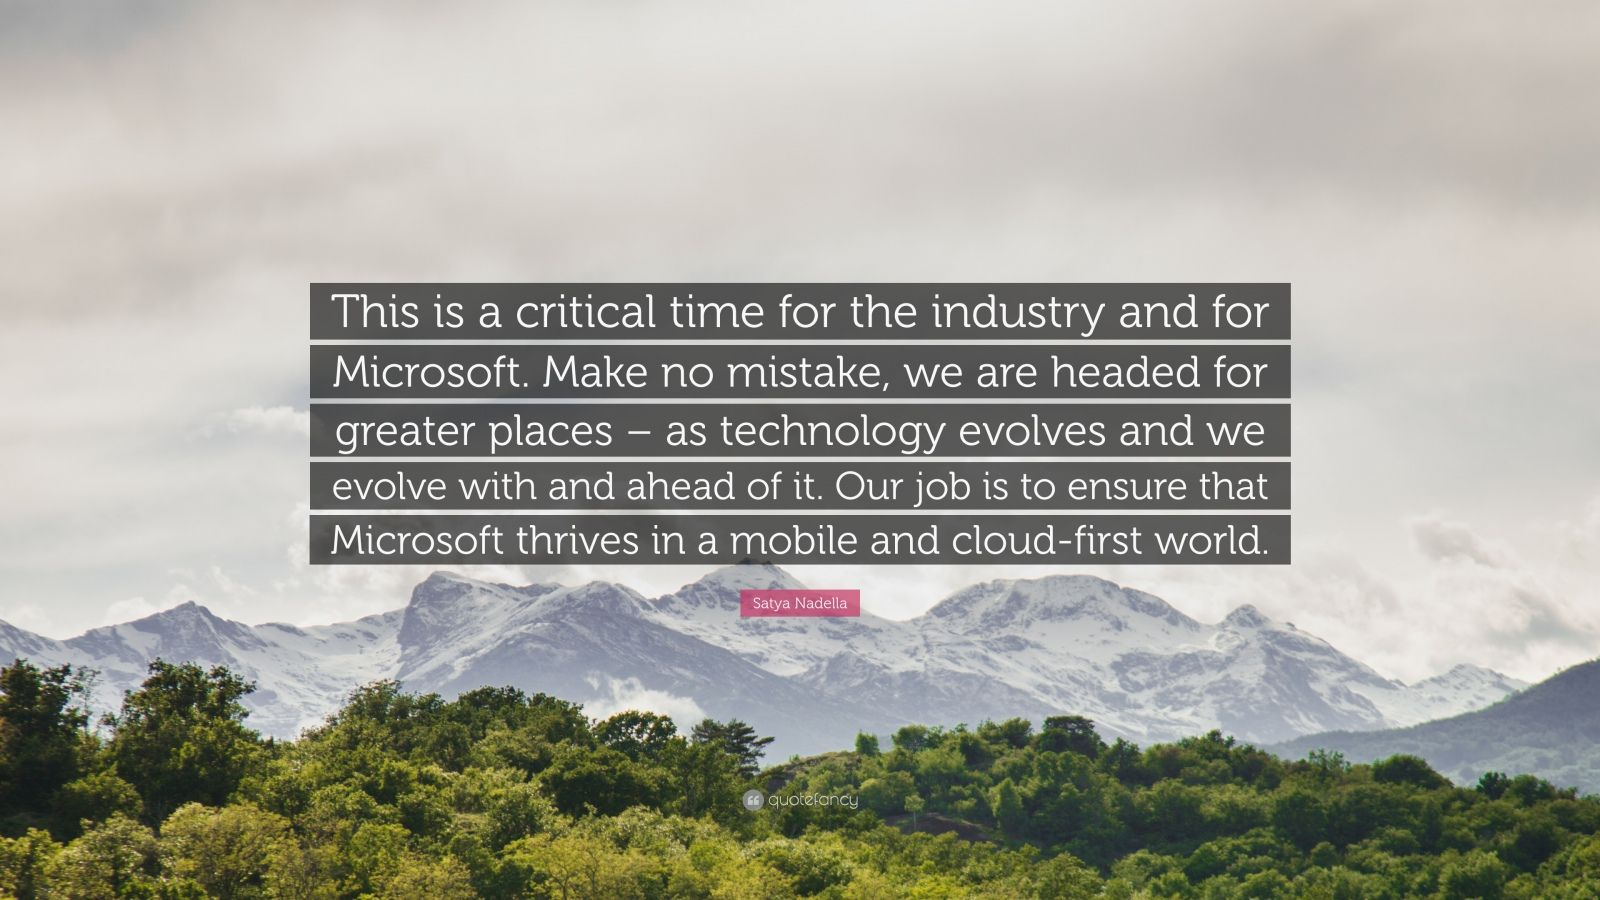 """Satya Nadella Quote: """"This is a critical time for the industry and for Microsoft. Make no mistake, we are headed for greater places – as technology evolves and we evolve with and ahead of it. Our job is to ensure that Microsoft thrives in a mobile and cloud-first world."""""""